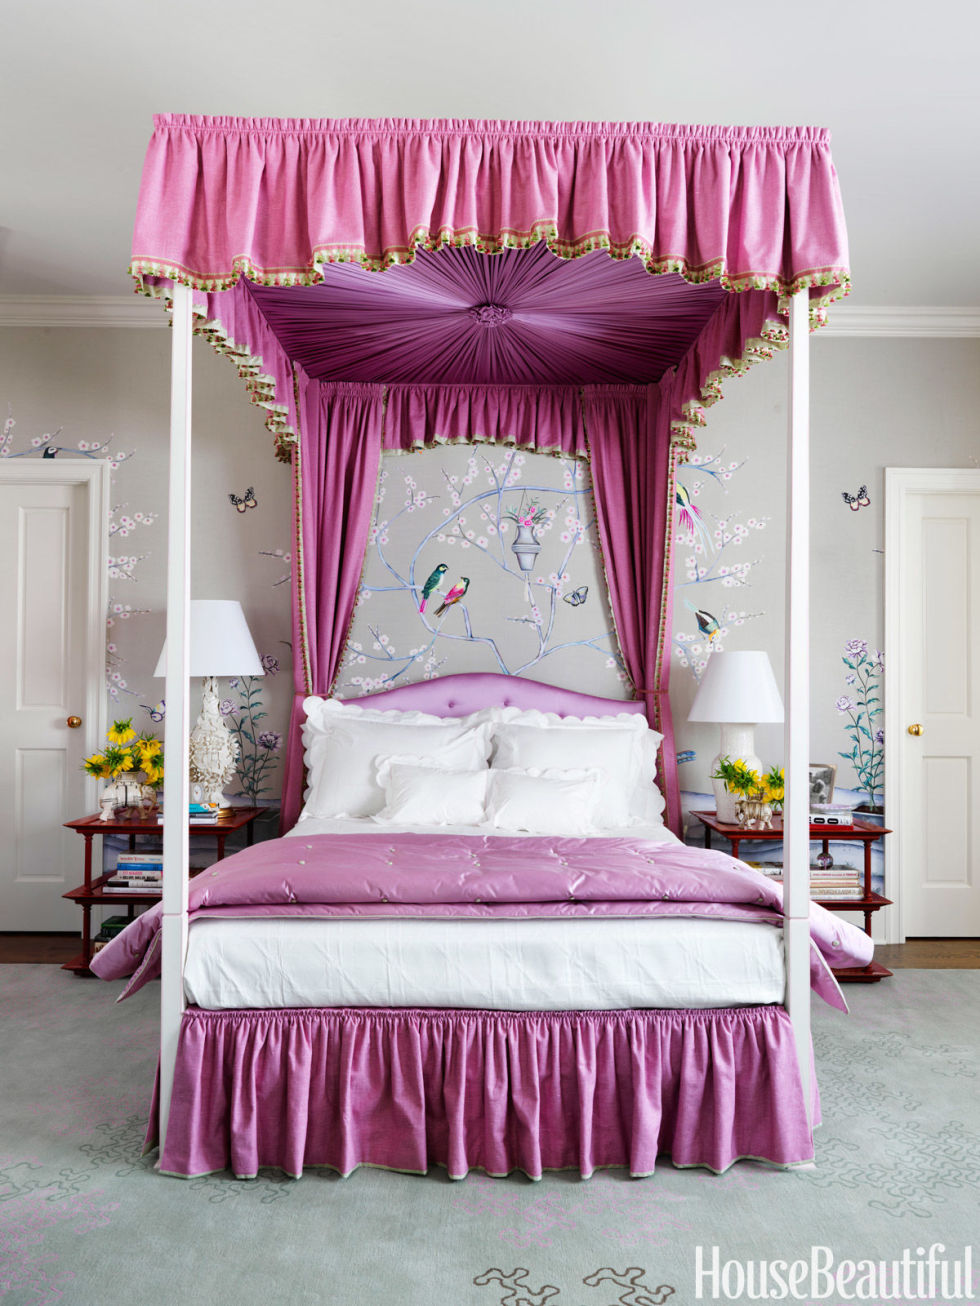 Bedroom paint designs pink - Bedroom Paint Designs Pink 35